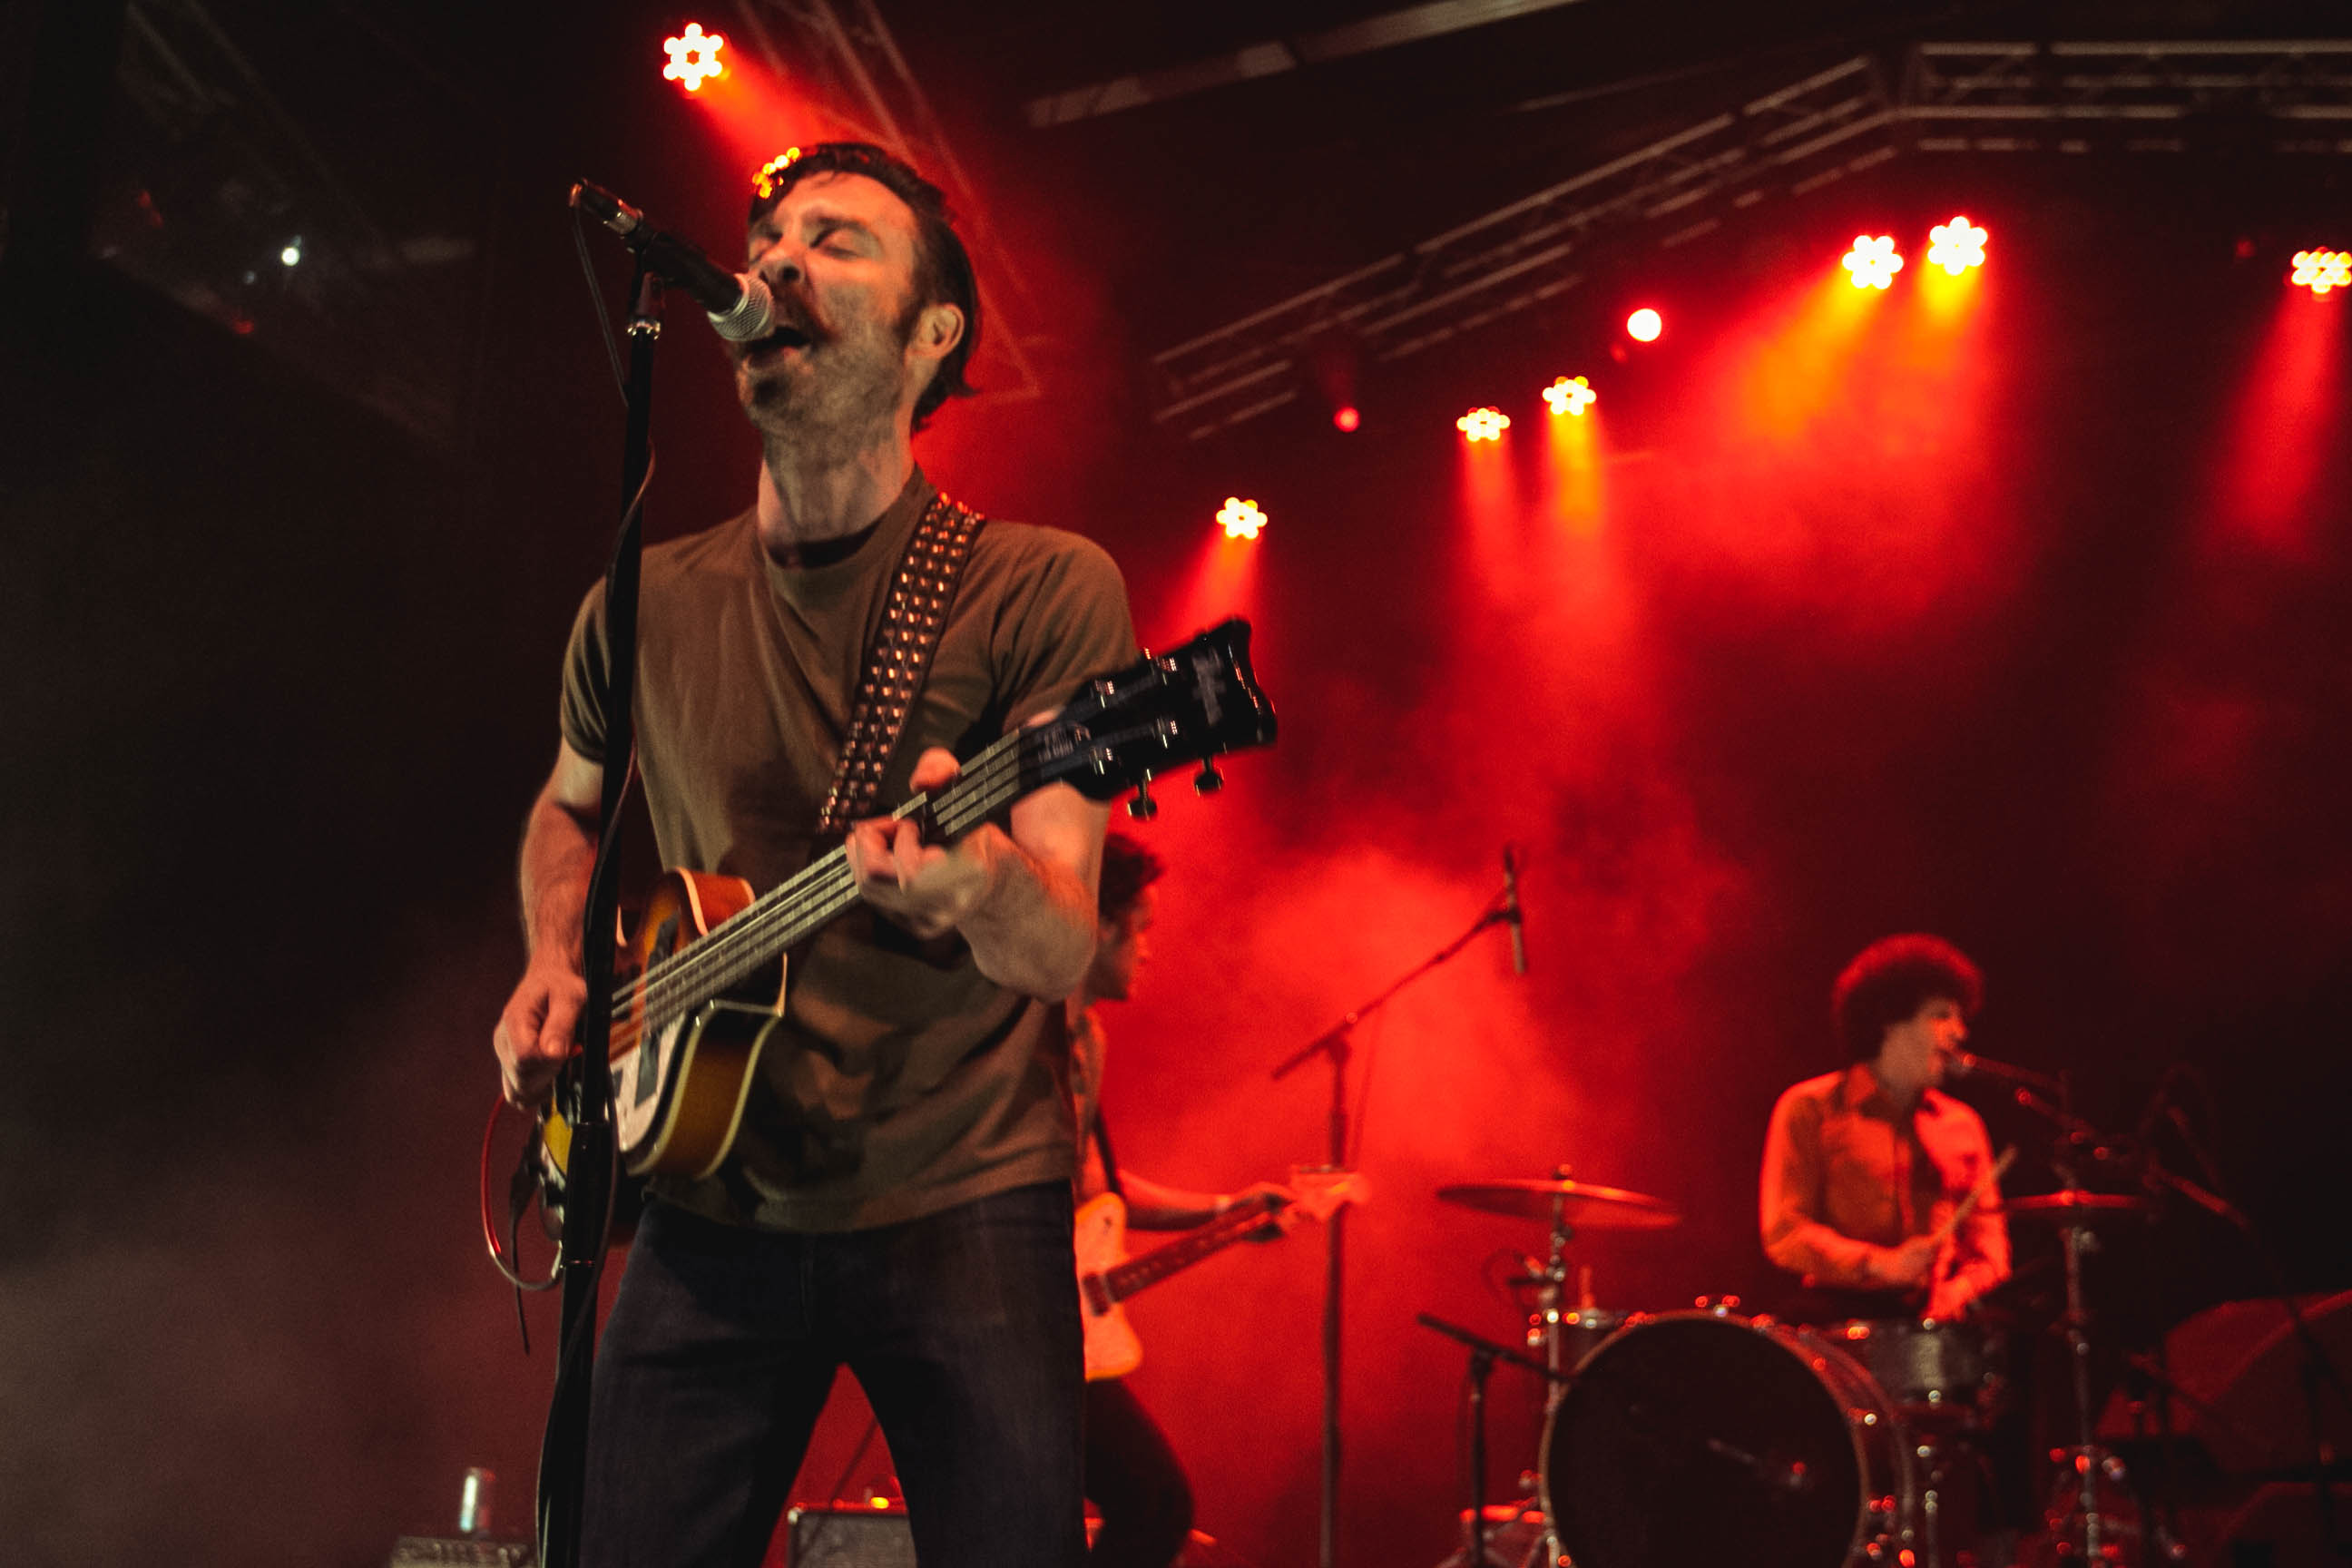 Black Lips Sound Tighter Now More Than Ever [PHOTOS] – Blurred Culture